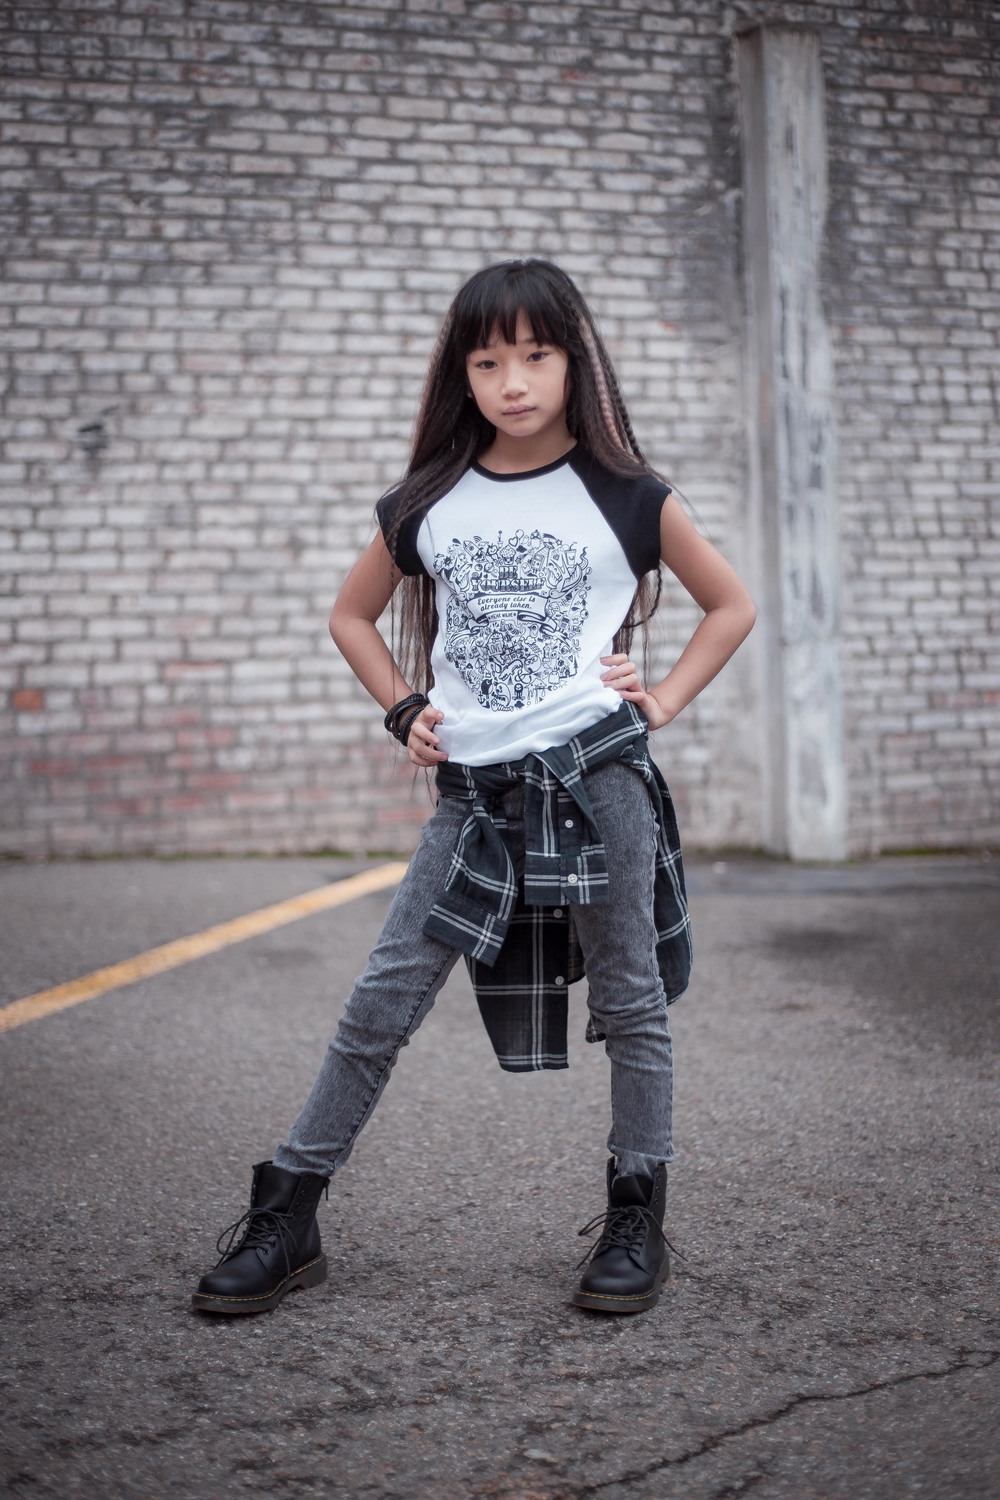 city kid style by phoenix street photography